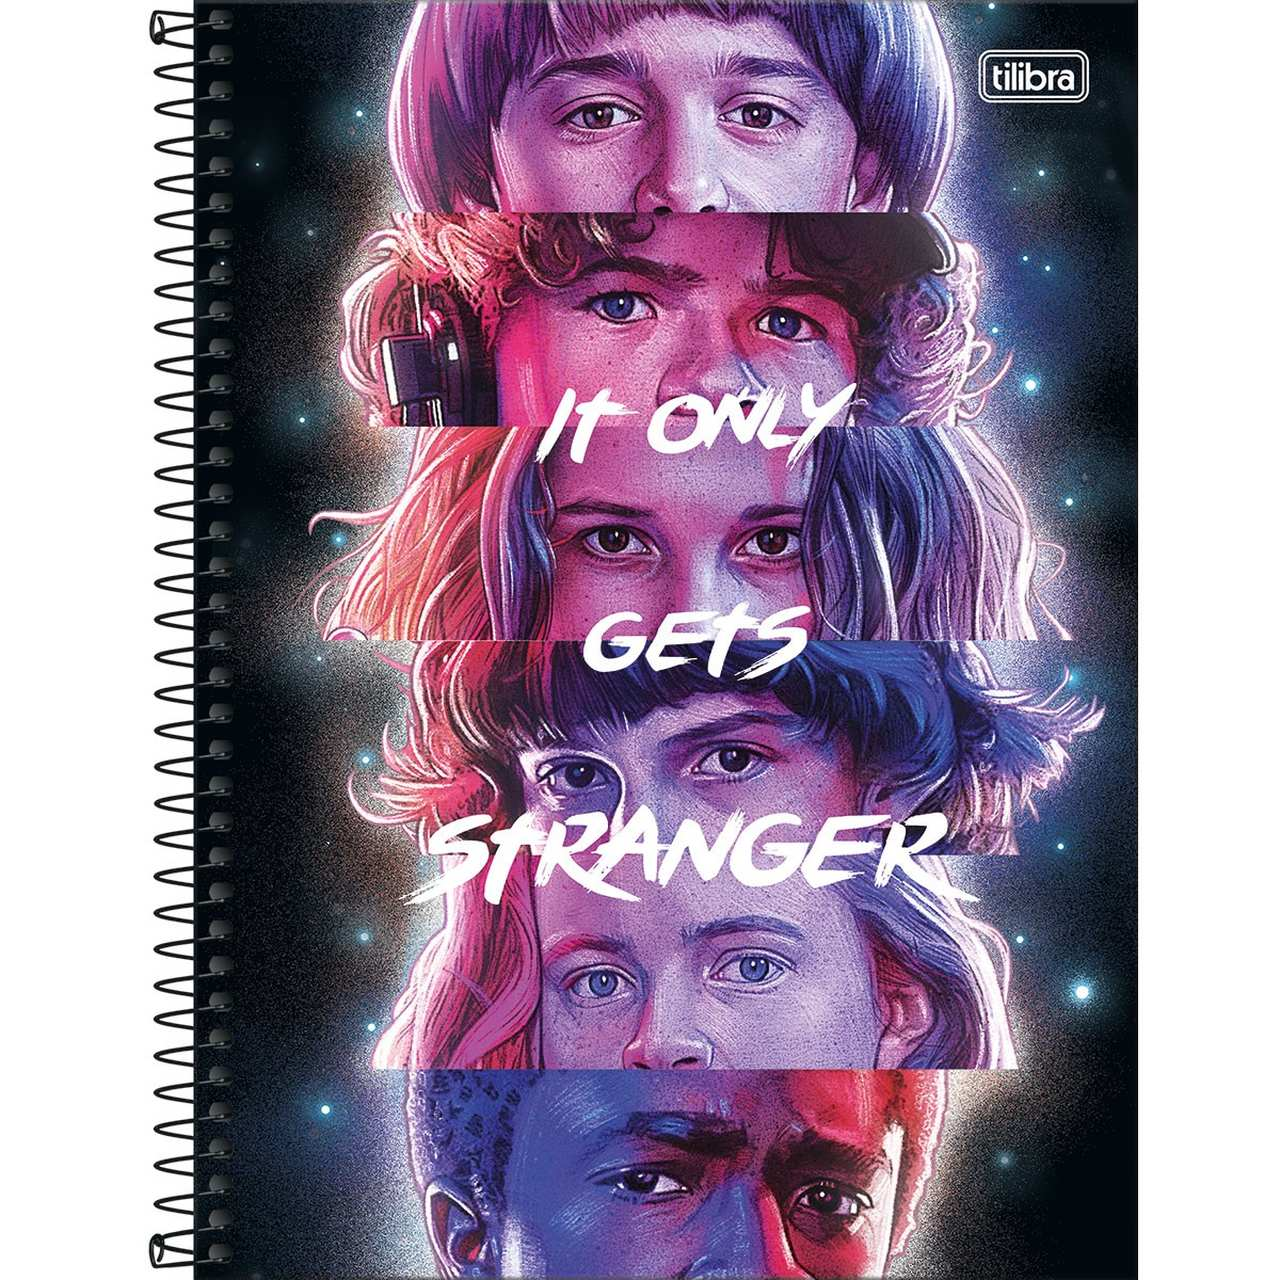 Caderno Espiral Capa Dura Universitário 10 Matérias Stranger Things It Only Get Stranger 160 Folhas